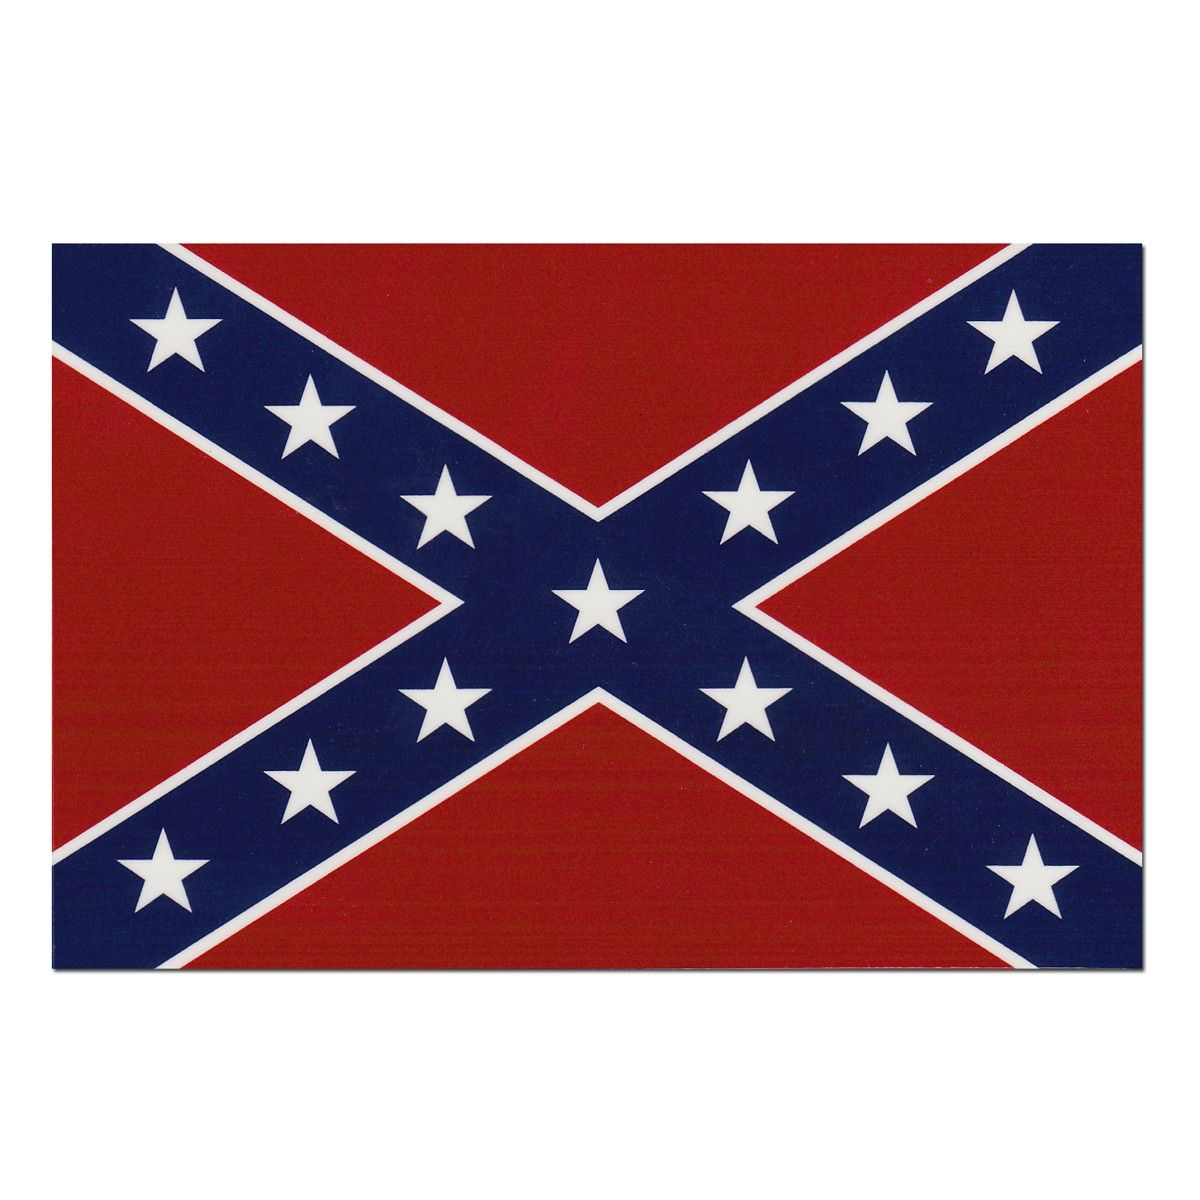 Confederate flag clipart image black and white download Confederate Flag Decal - ClipArt Best - ClipArt Best | Craft Ideas ... image black and white download